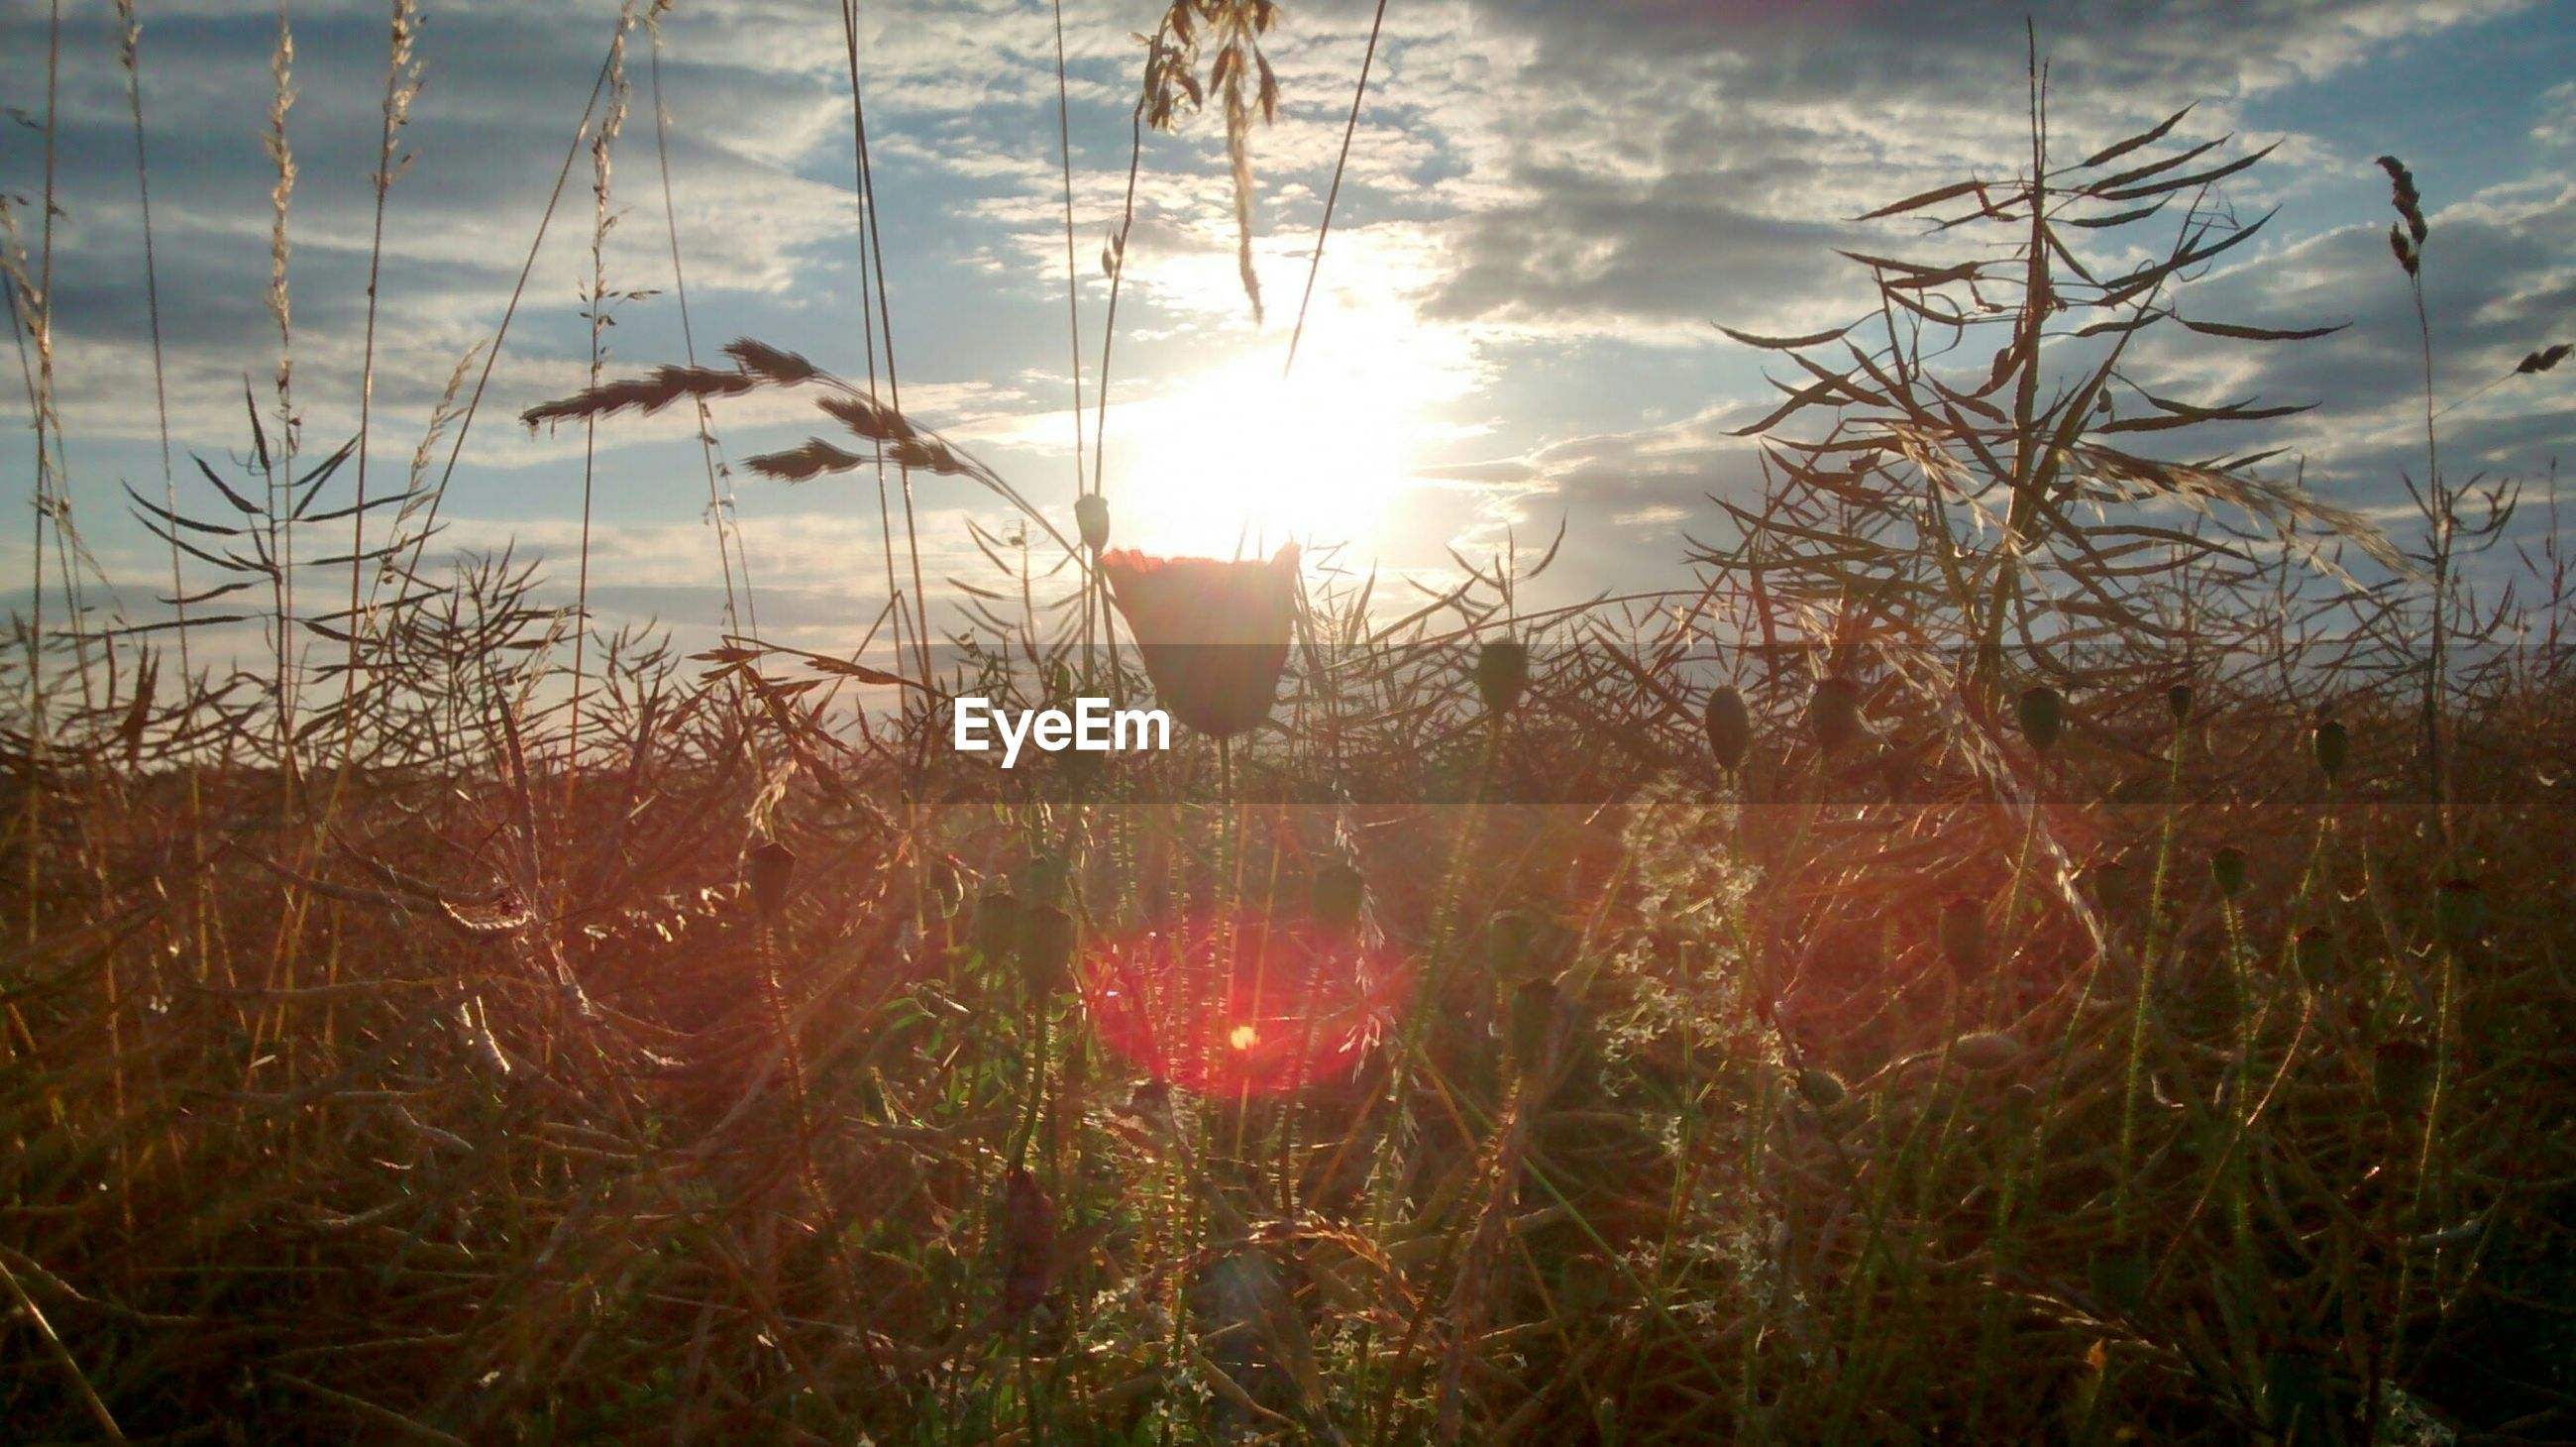 sun, grass, sky, tranquility, plant, beauty in nature, nature, tranquil scene, sunset, sunlight, field, growth, sunbeam, scenics, water, lake, lens flare, cloud - sky, landscape, outdoors